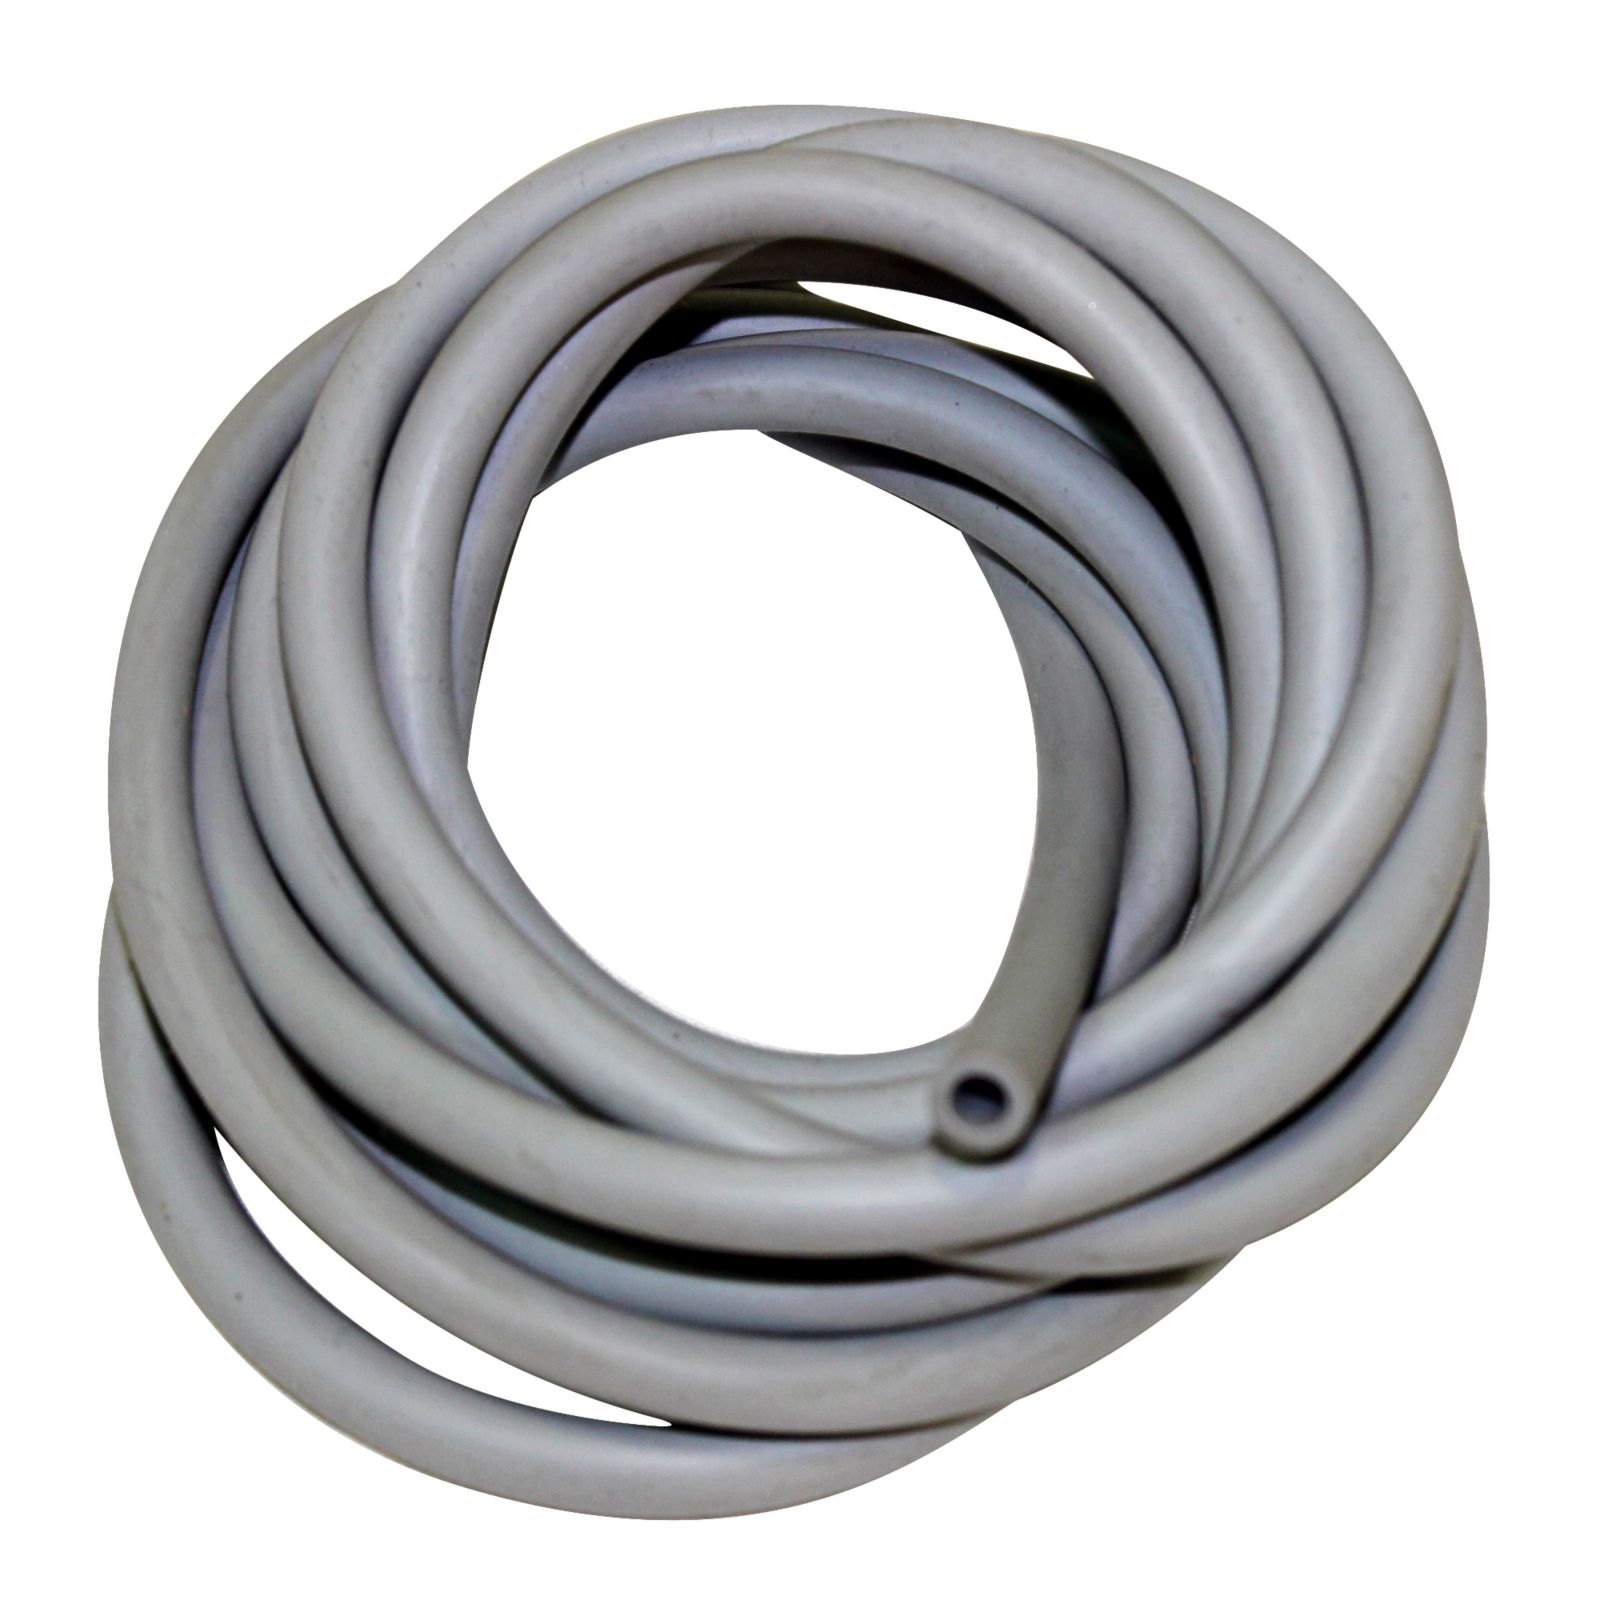 "ICP 1170921 - Sensor Tube, 3/16"" I.D. X 10', Gray"